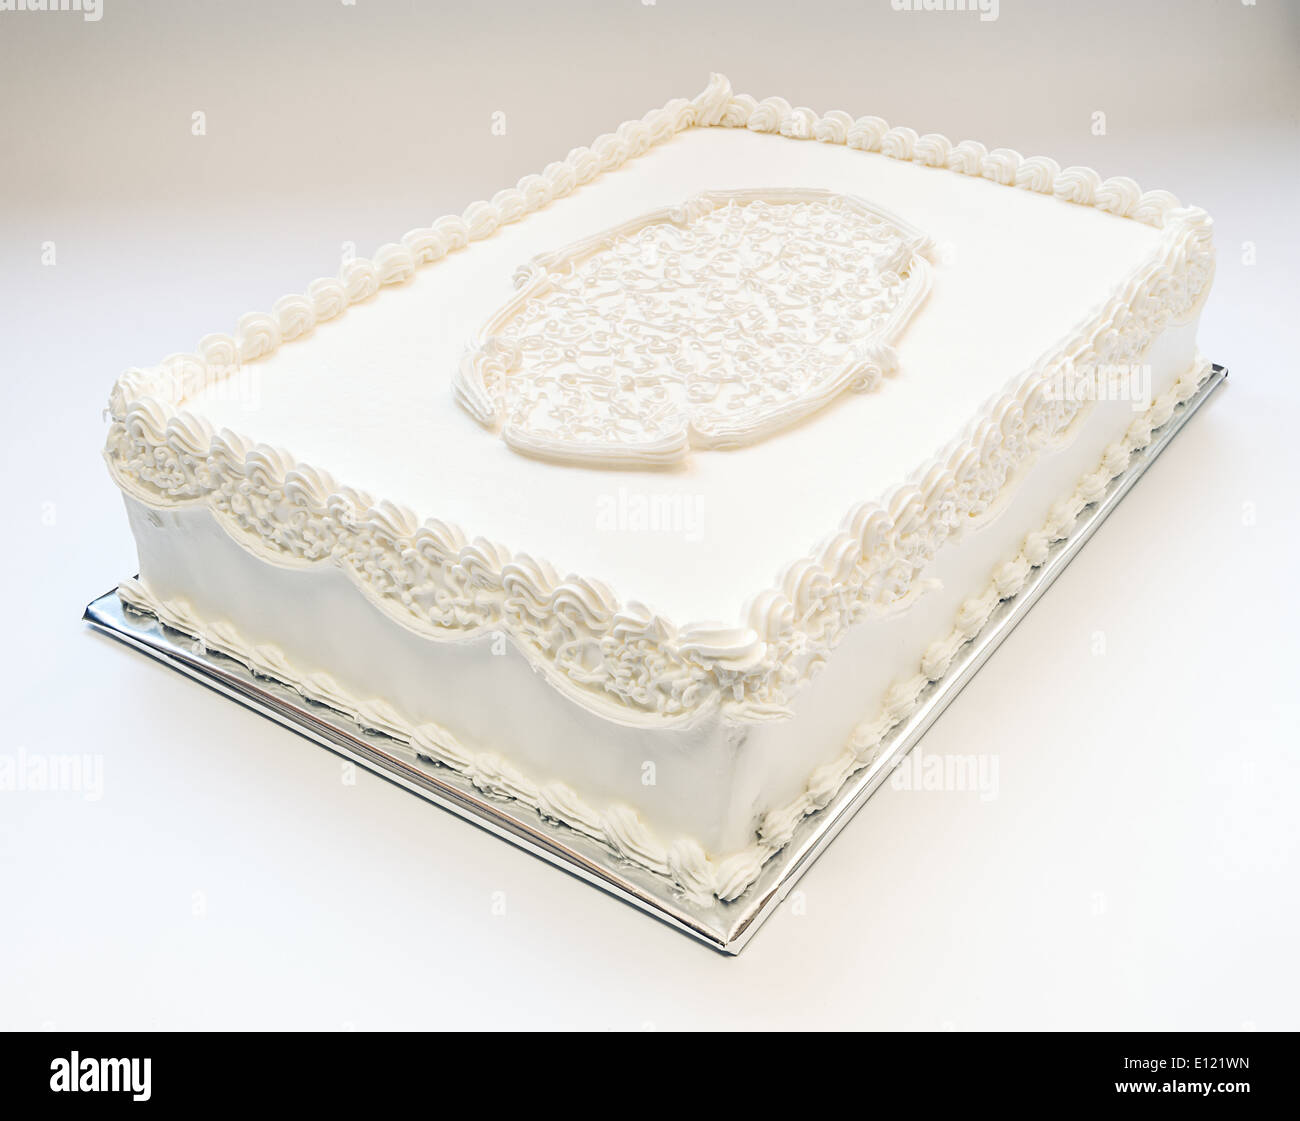 Simple Wedding Cake All In White On Gray Background Ornamented On